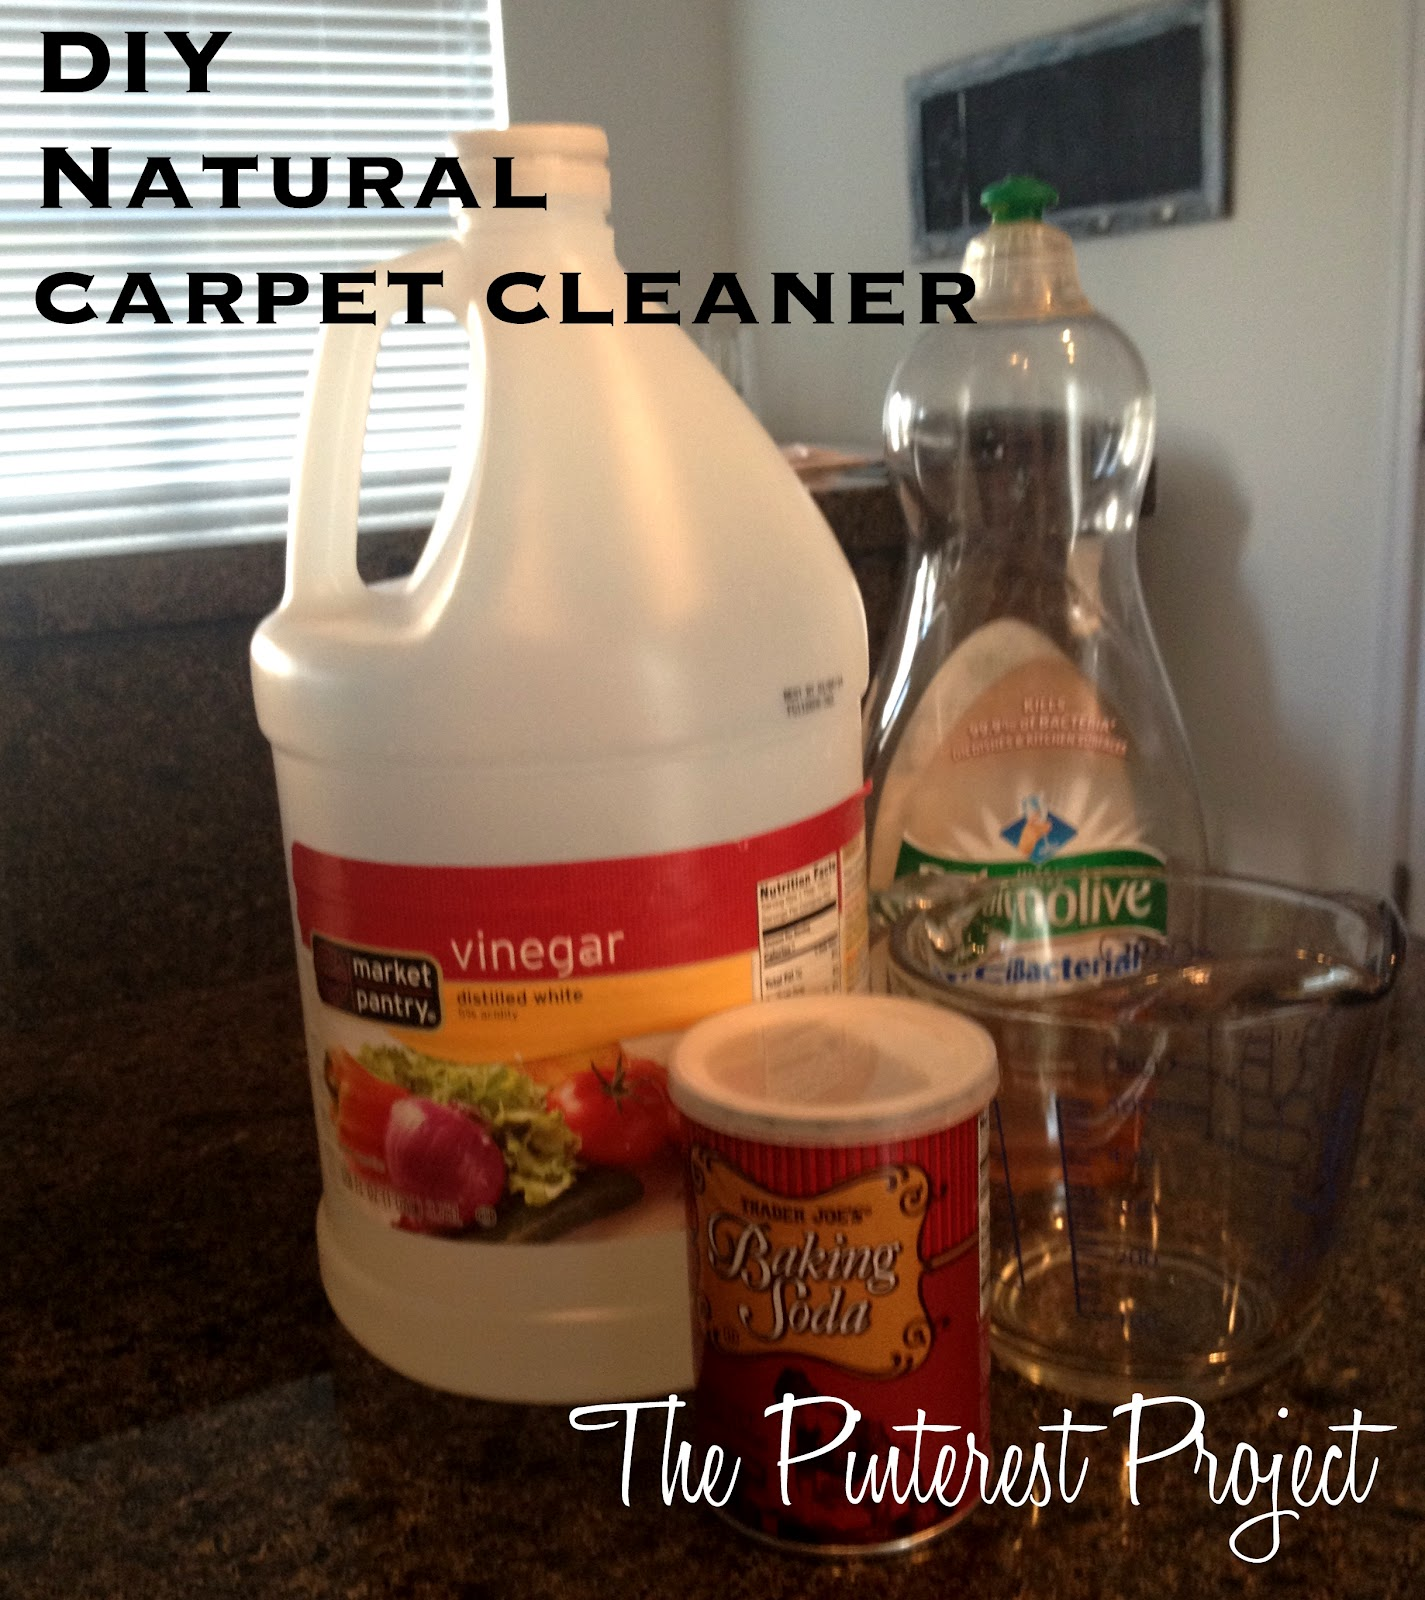 Diy Natural Carpet Cleaner The Pinterest Project